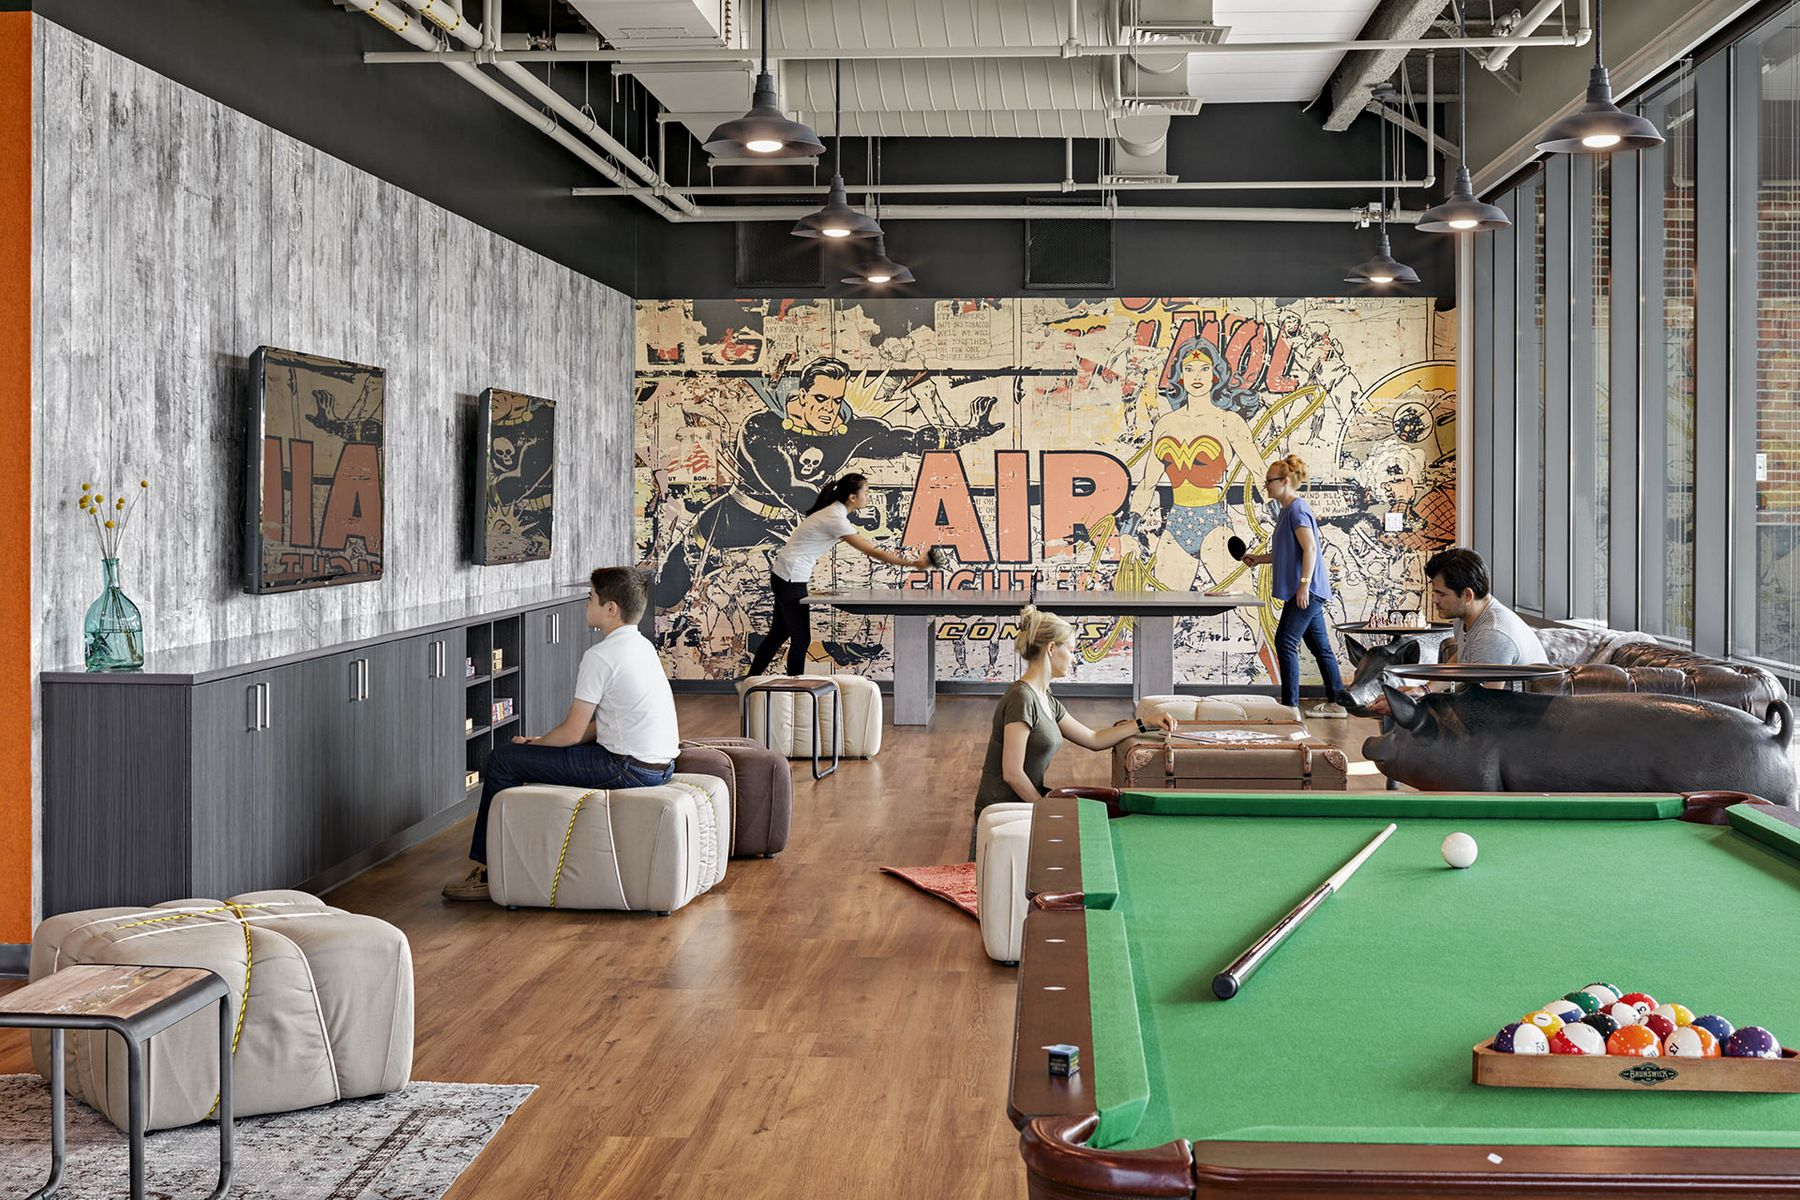 Game Room In The TripAdvisor HQ Offices   Pool Table, TVs, Ping Pong,